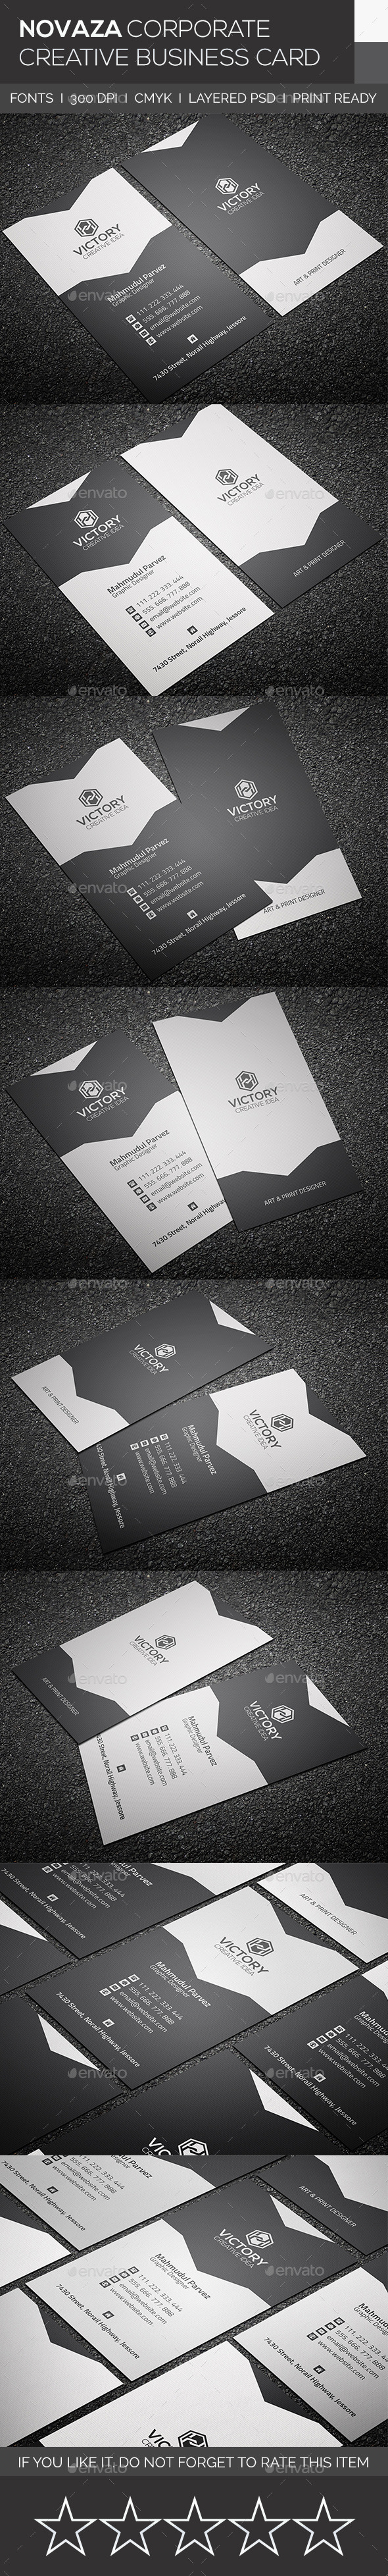 GraphicRiver Novaza Corporate & Creative Business Card 9277015